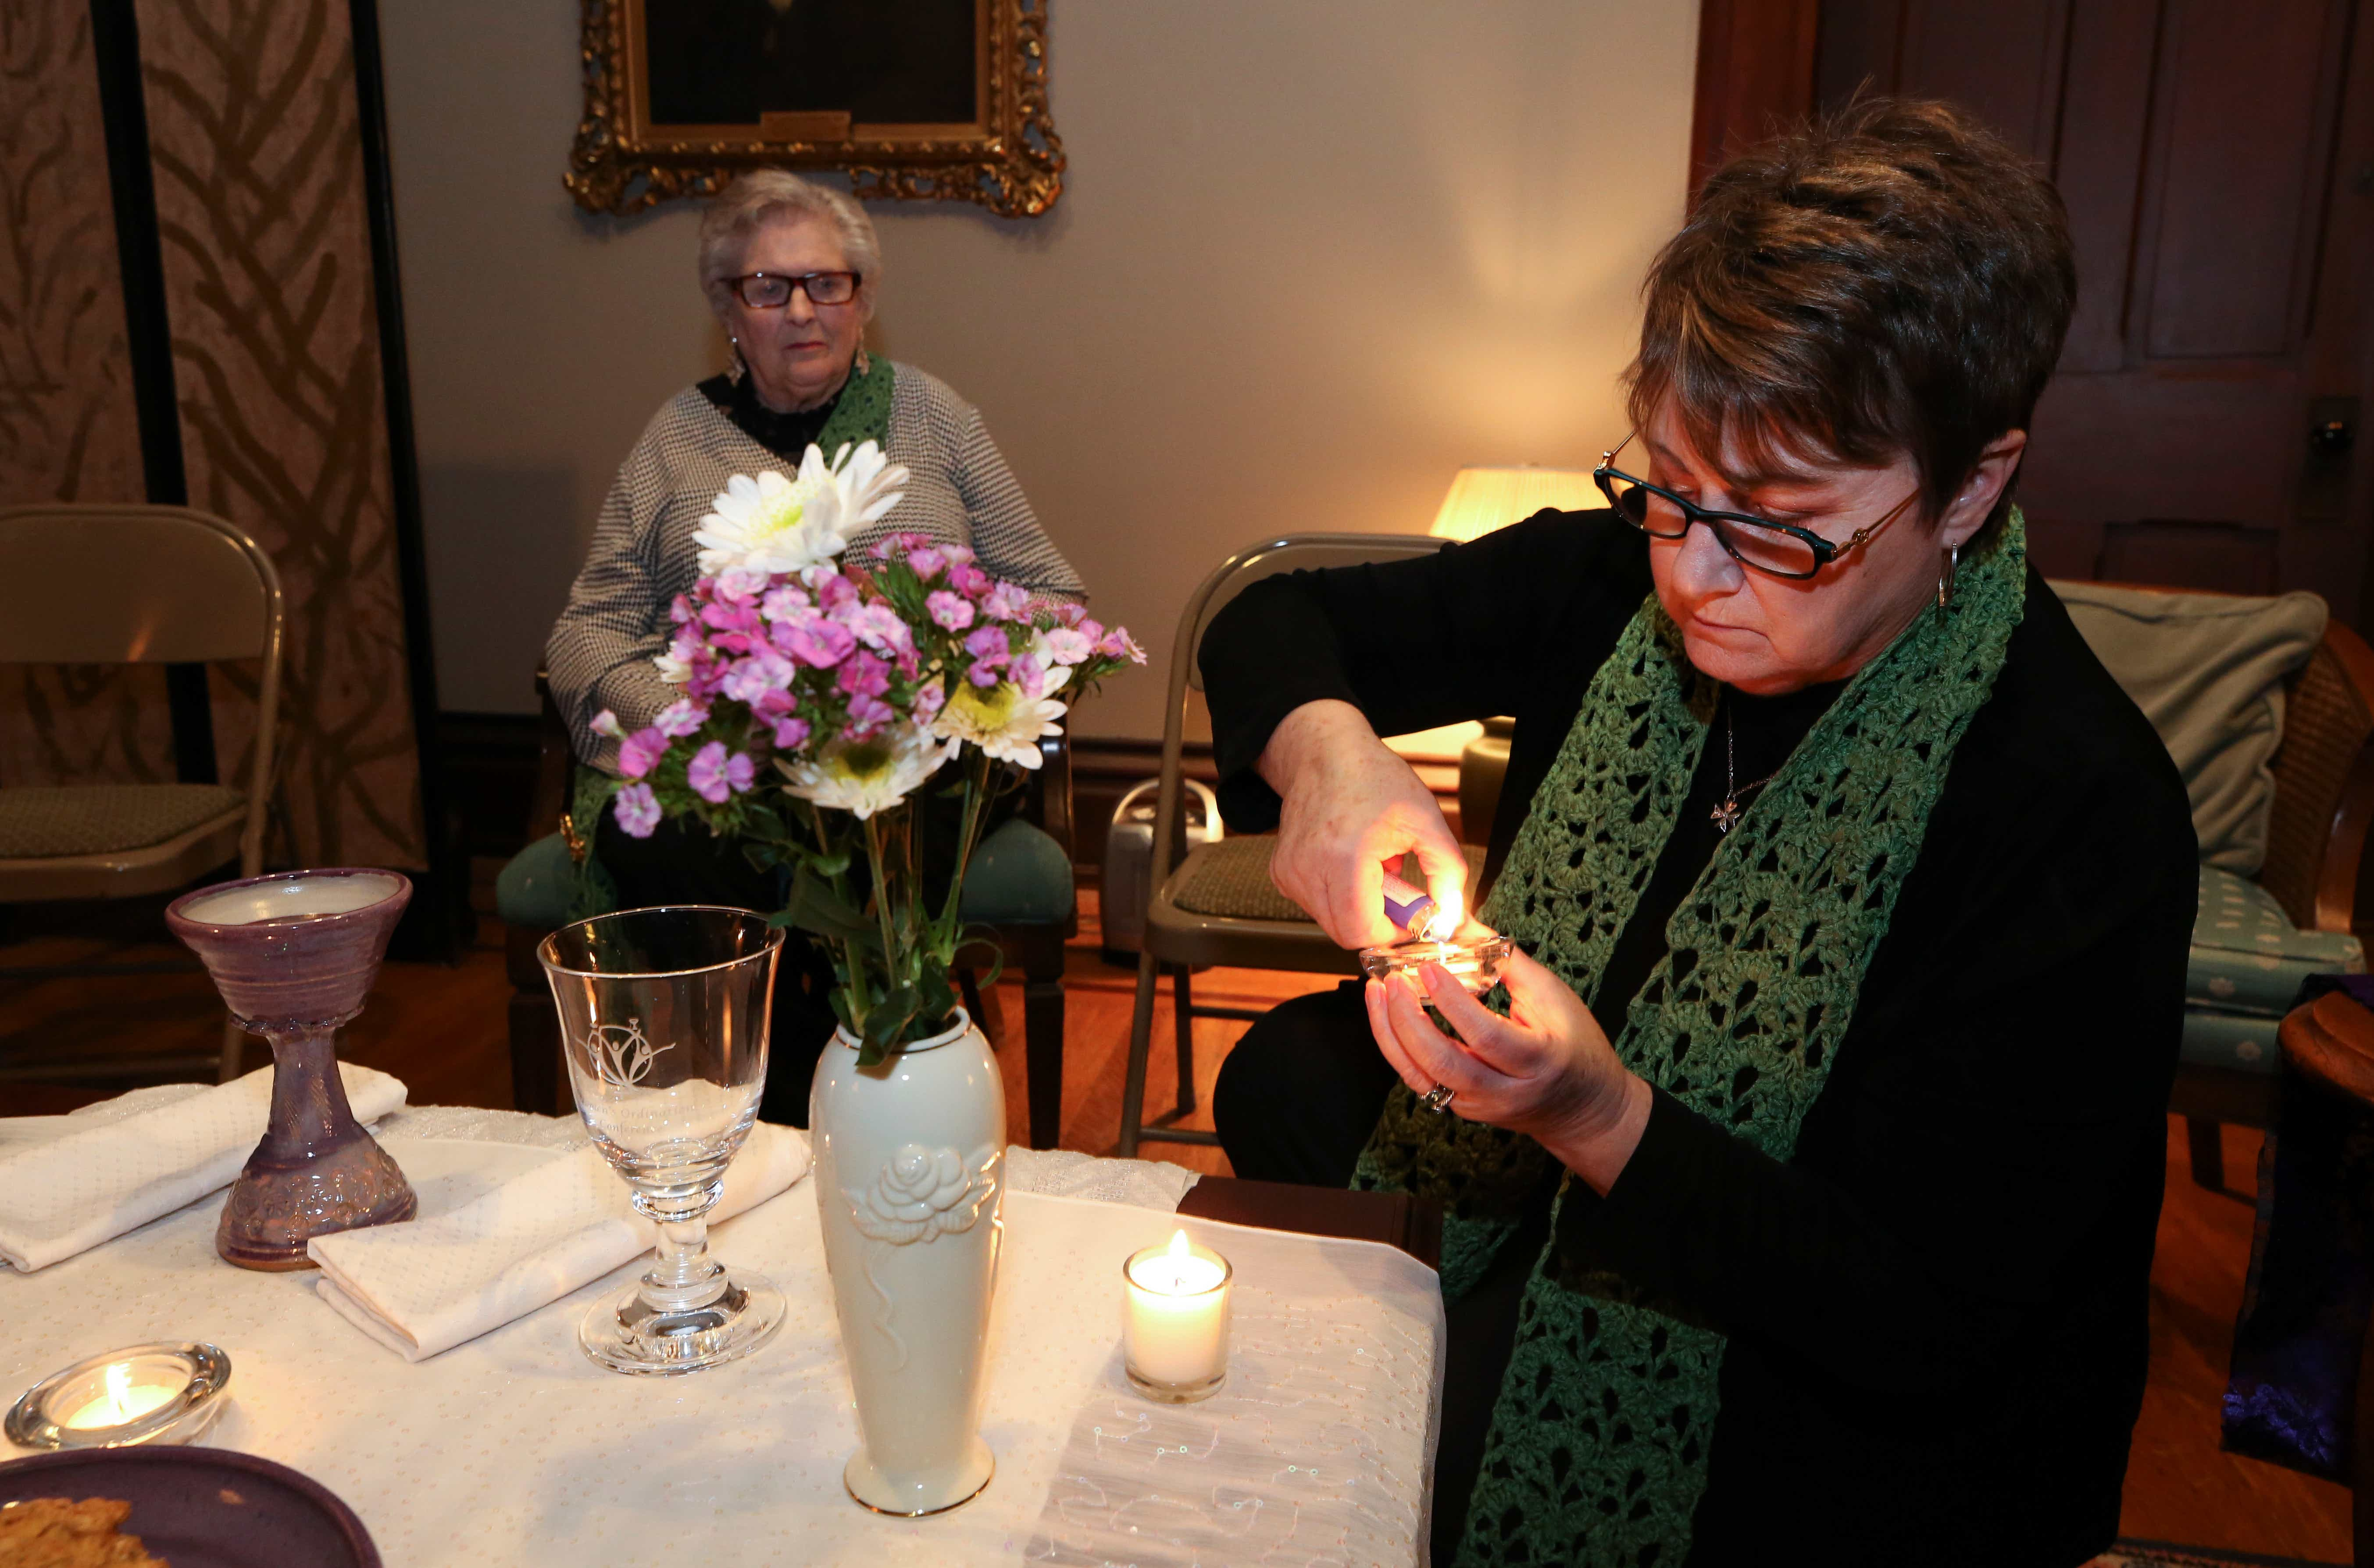 Women priests break Roman Catholic rules and demand a place at the altar